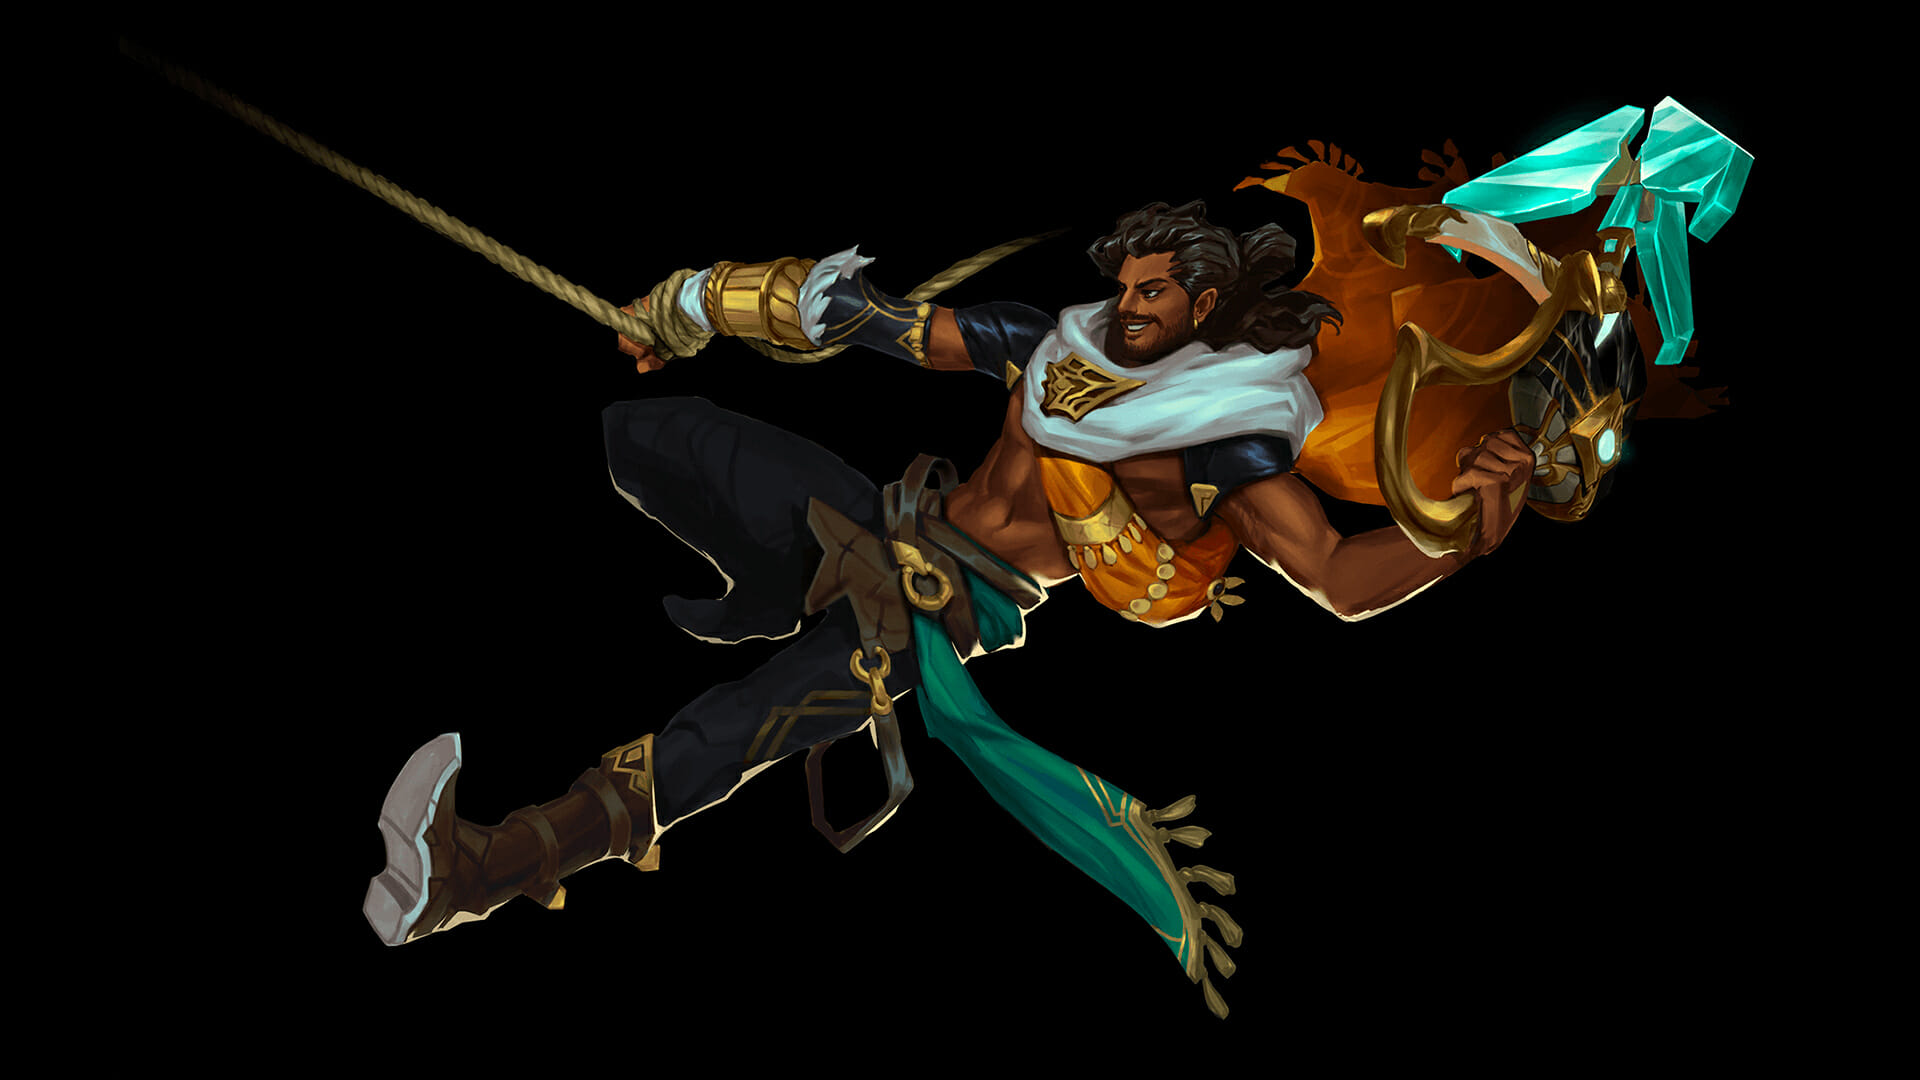 Akshan has a lot of mobility and can swing on his rope to engage enemy champions in LoL